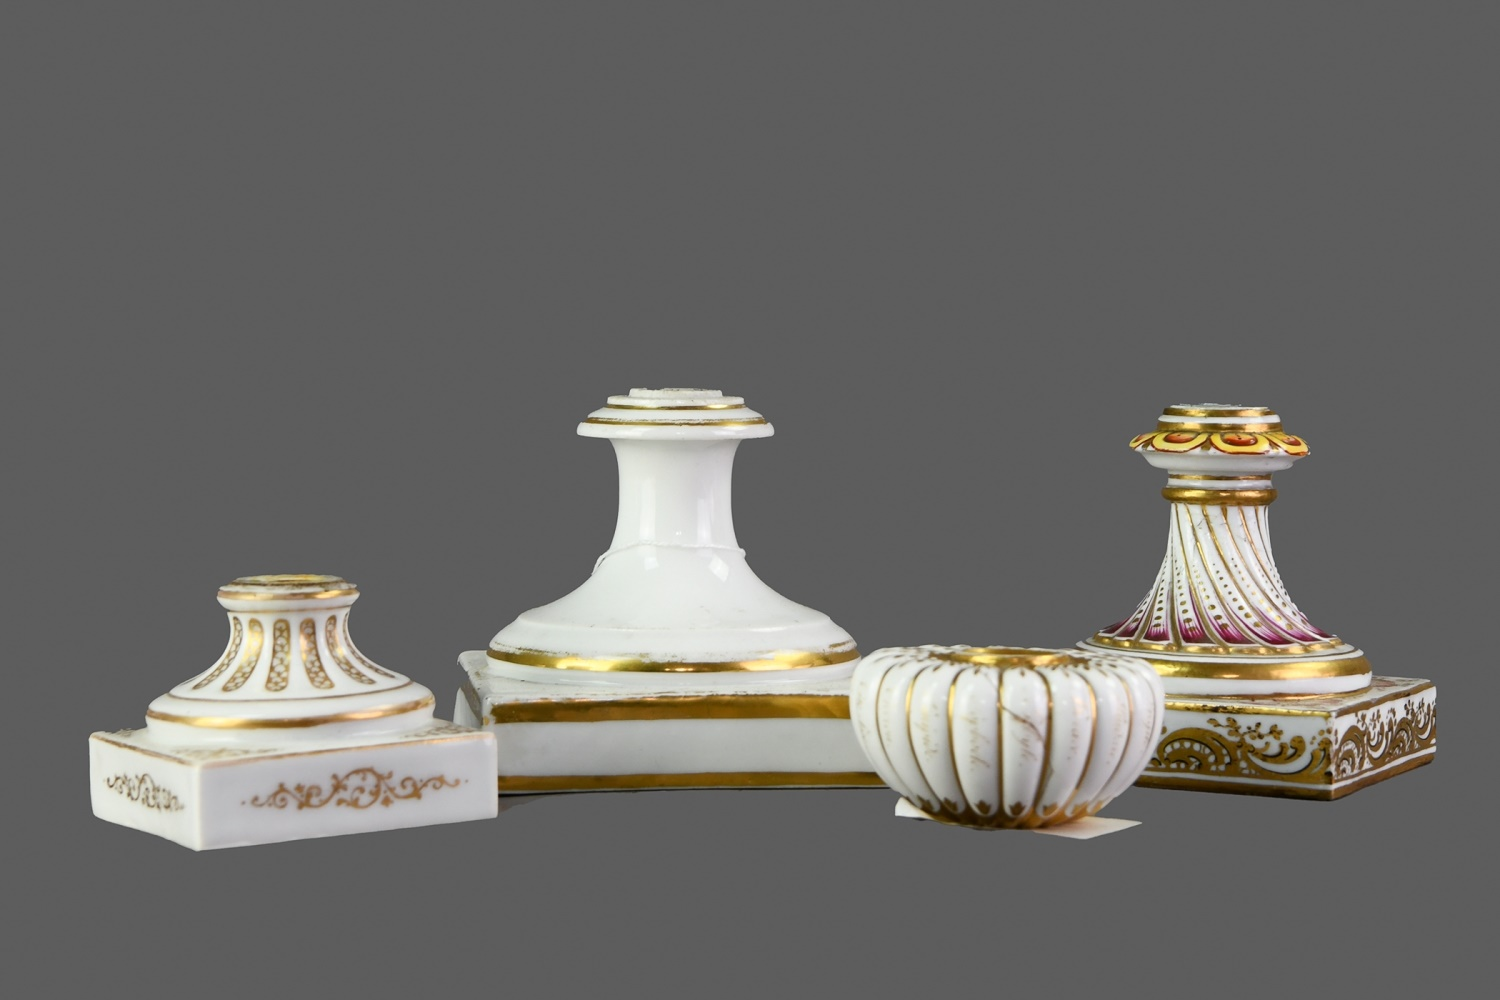 A LATE 19TH CENTURY SEVRES PORCELAIN INKWELL, ALONG WITH THREE PEDESTALS